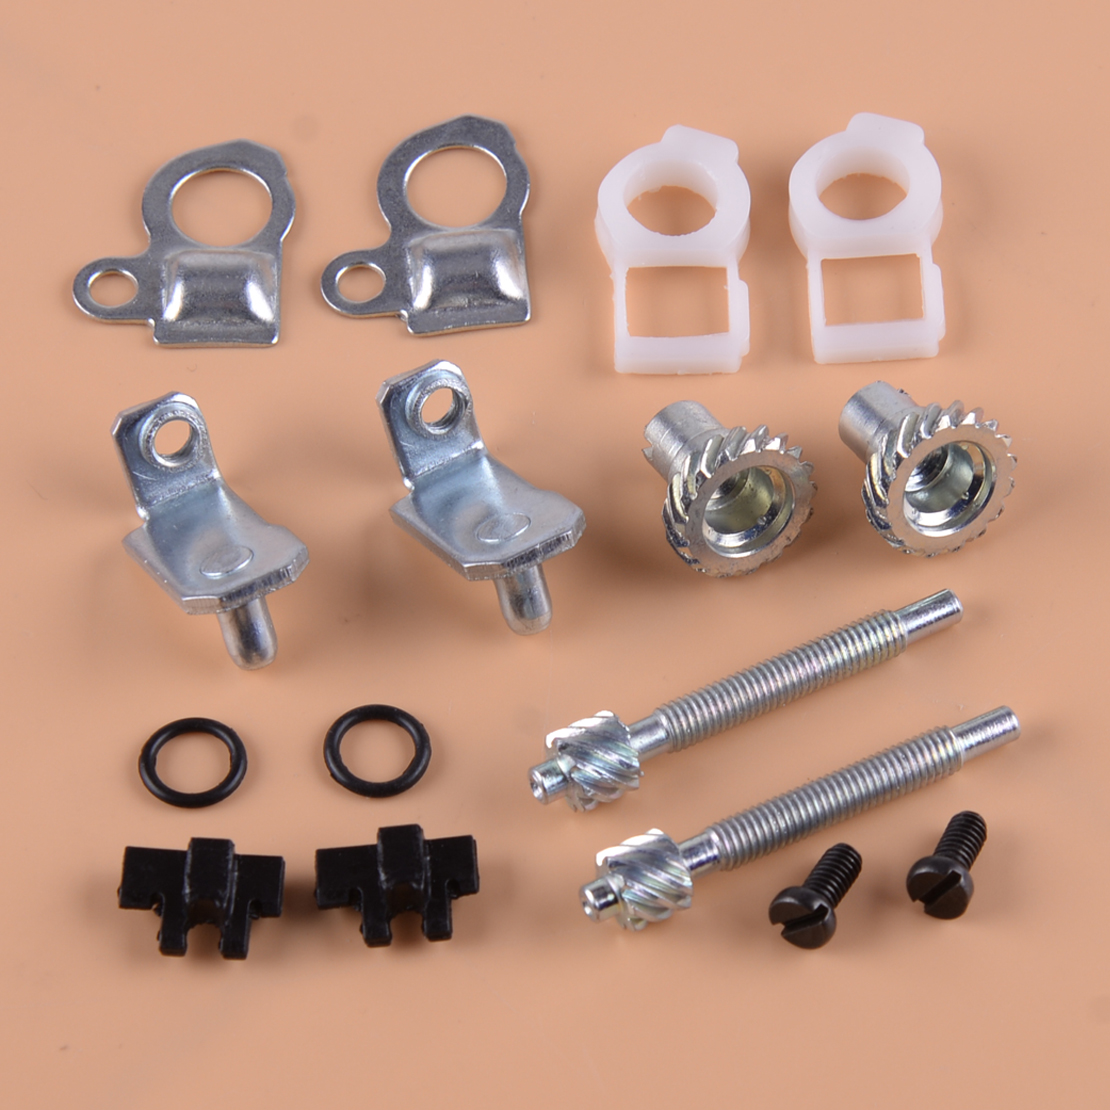 LETAOSK  2 Kit Chain Adjuster Tensioner Kit Fit For Stihl MS261 MS280 MS341 MS441 038 MS461